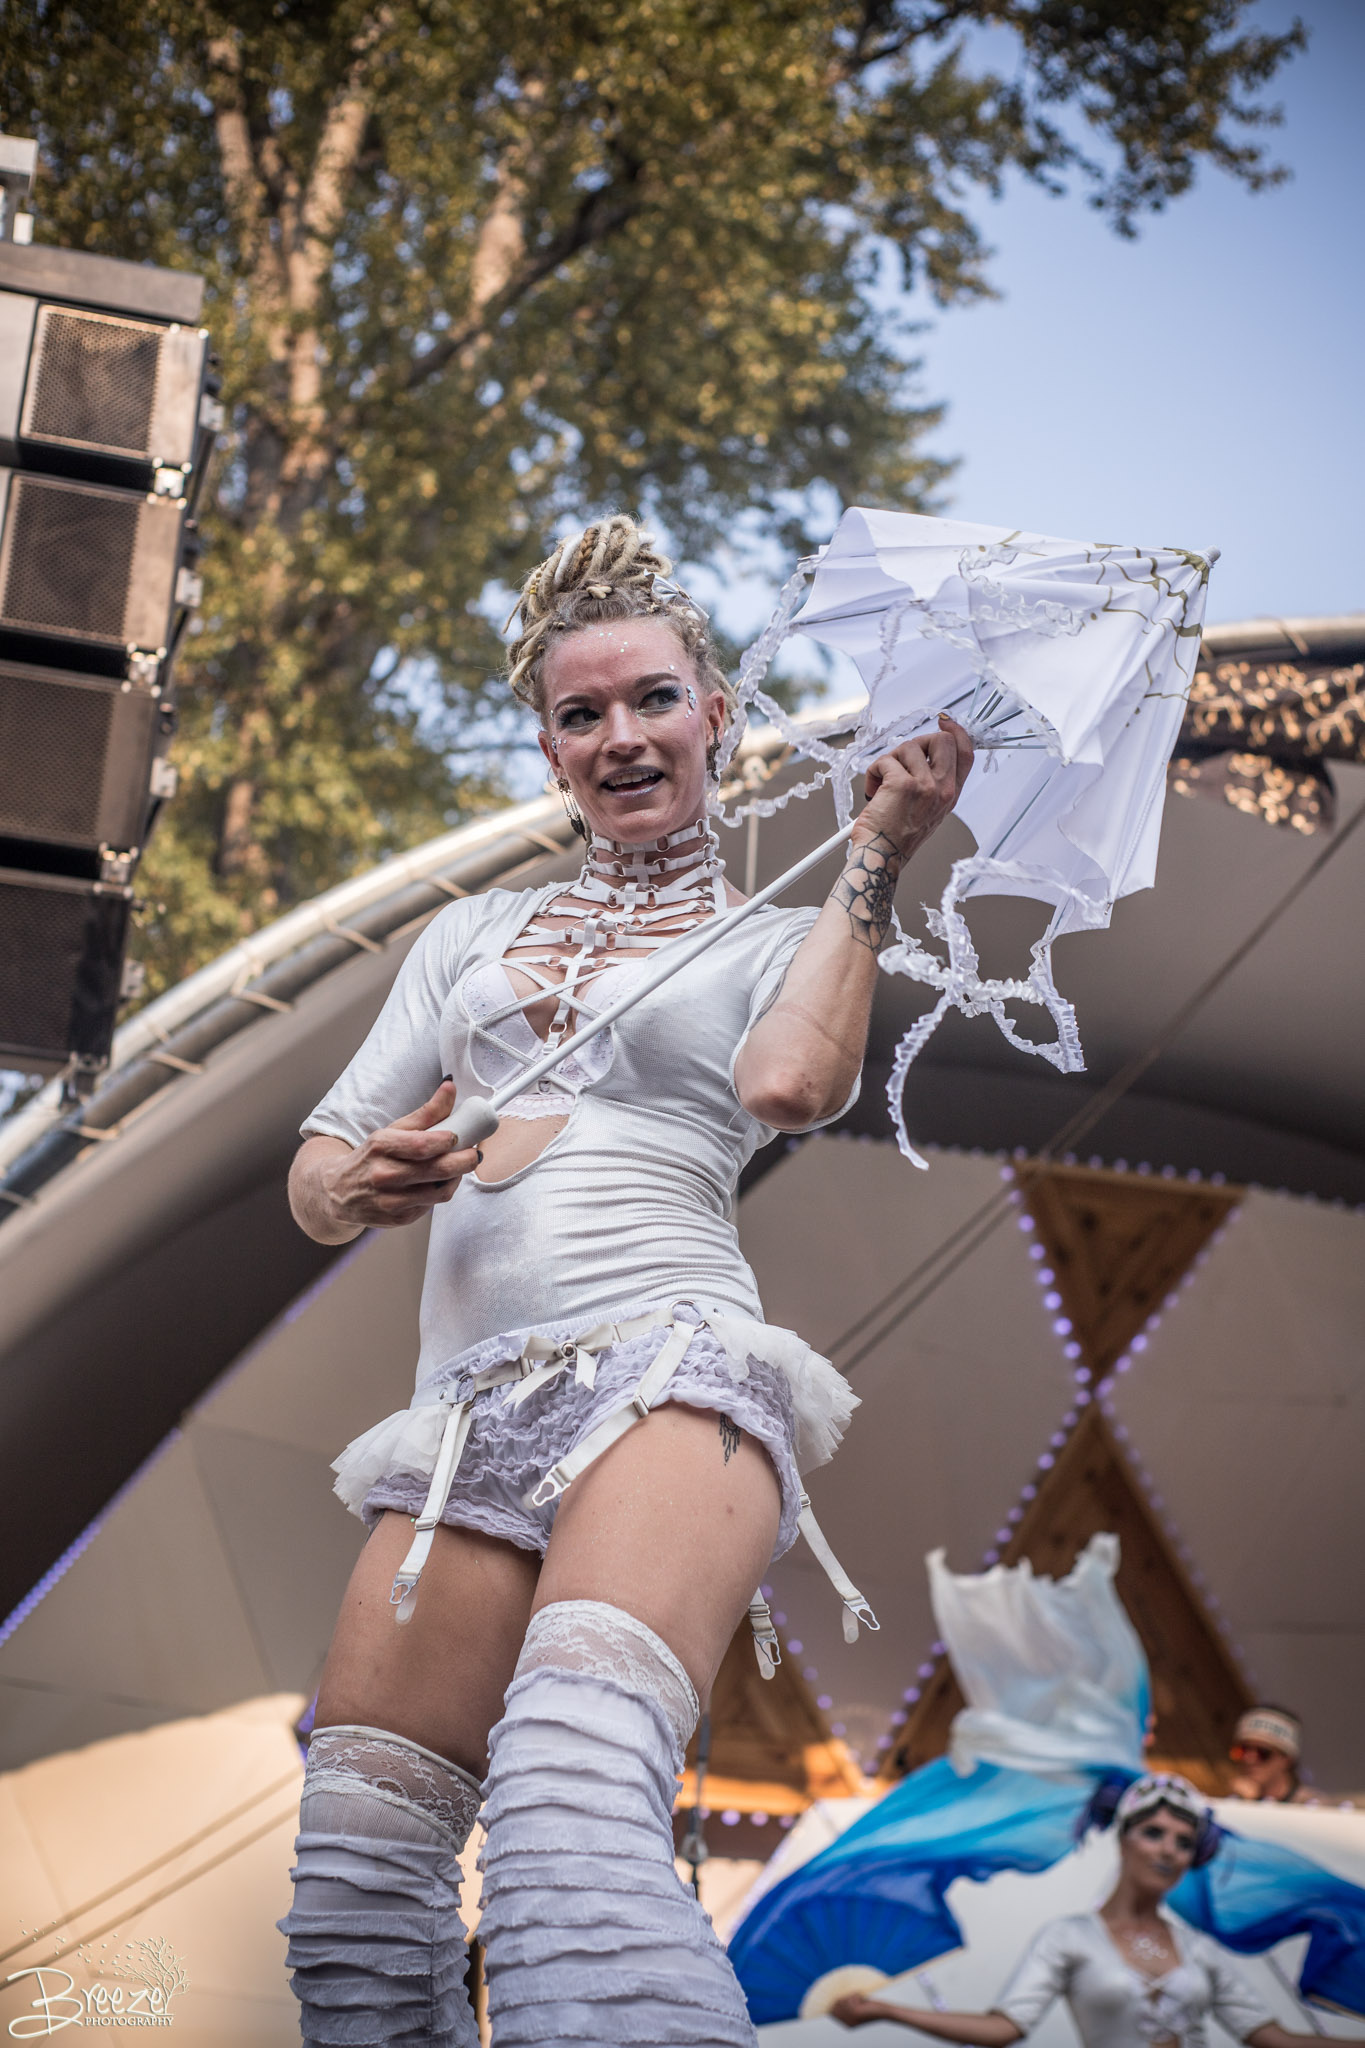 Brie'Ana Breeze Photography & Media - Shambhala 2018-0047.jpg